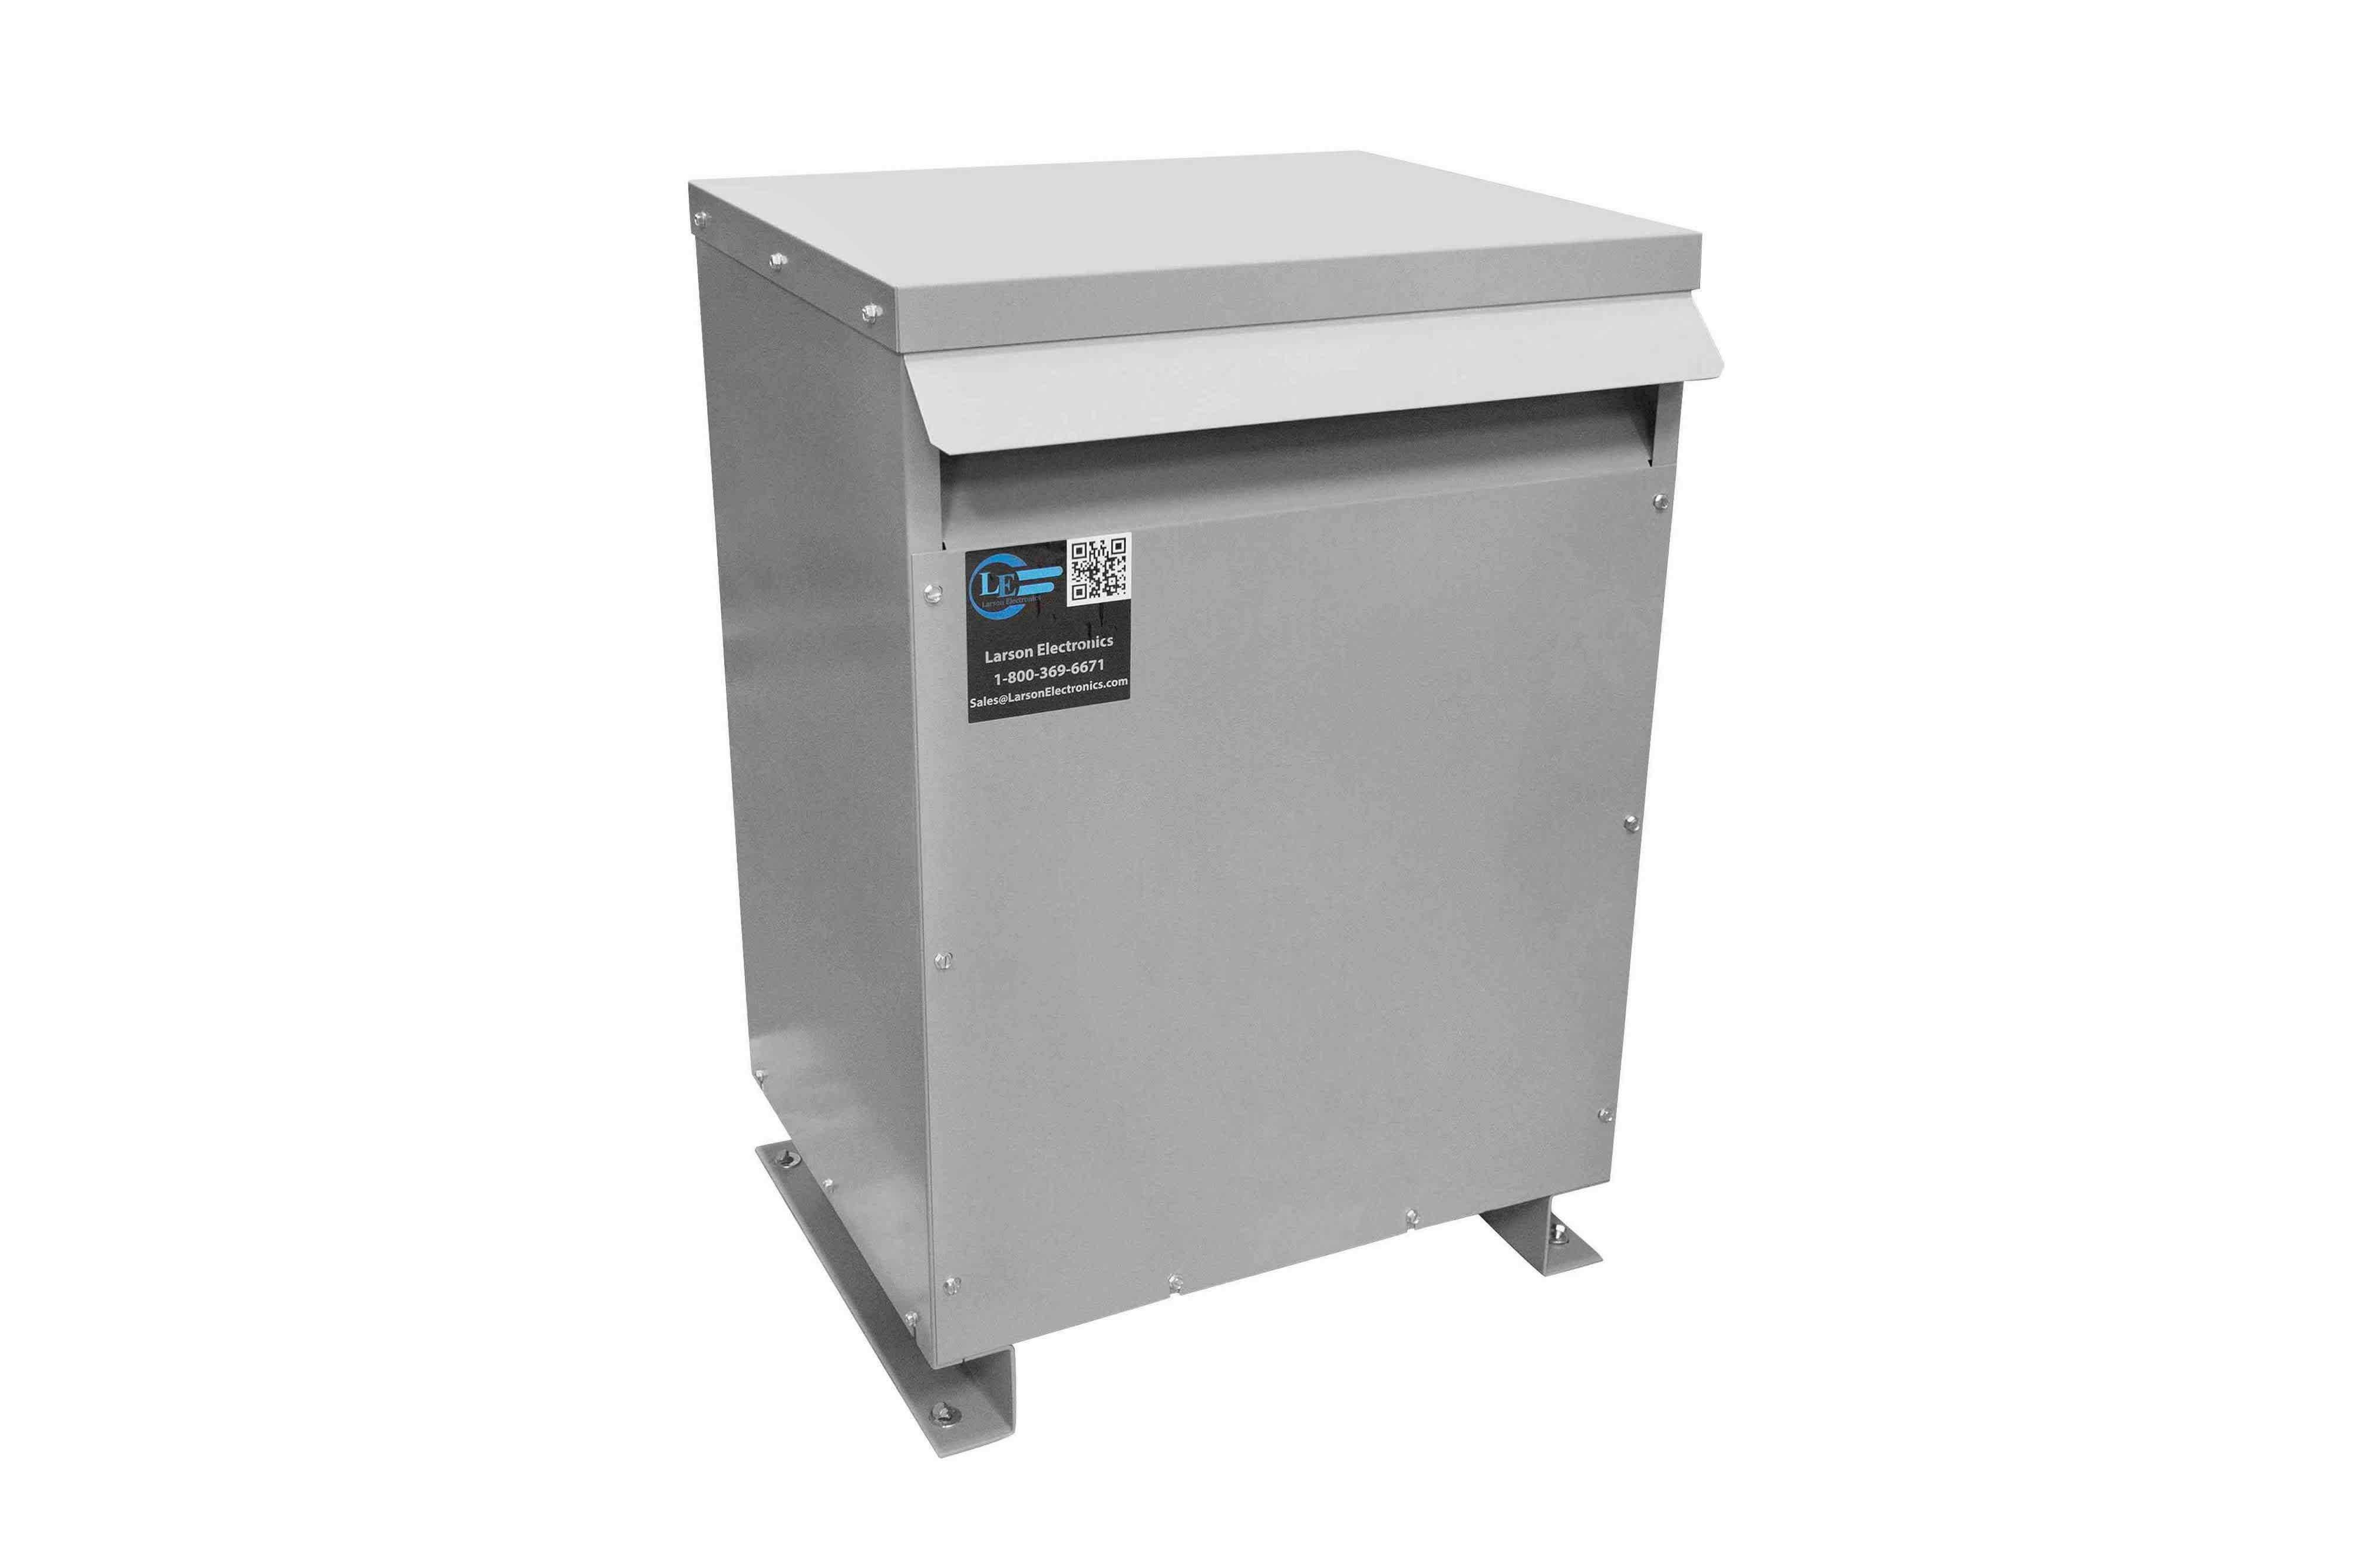 300 kVA 3PH Isolation Transformer, 230V Wye Primary, 208V Delta Secondary, N3R, Ventilated, 60 Hz